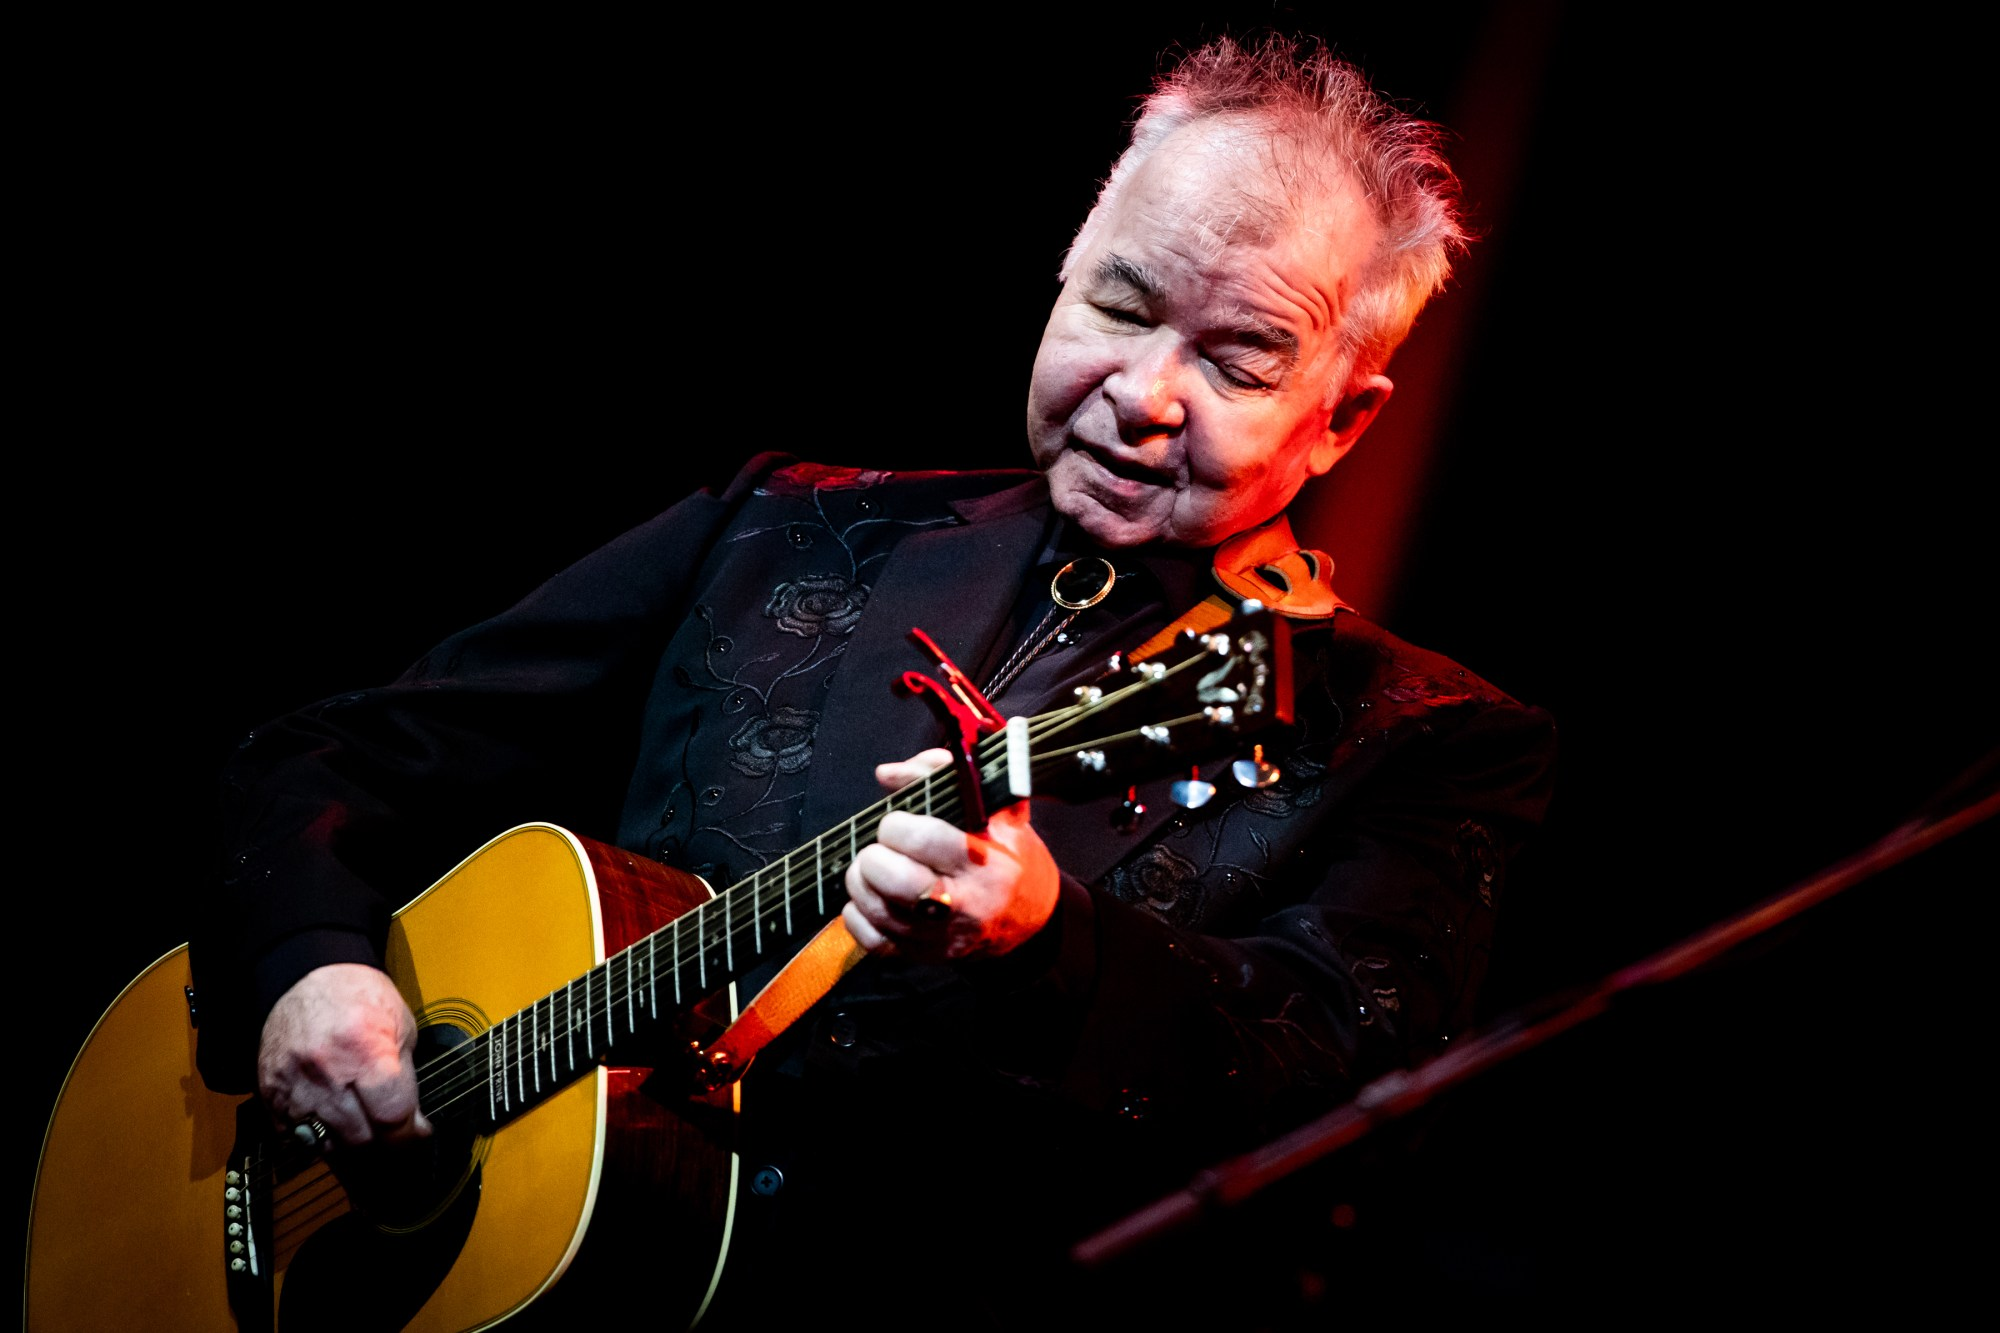 John Prine performs at John Anson Ford Amphitheatre on October 01, 2019 in Hollywood. (Rich Fury/Getty Images)